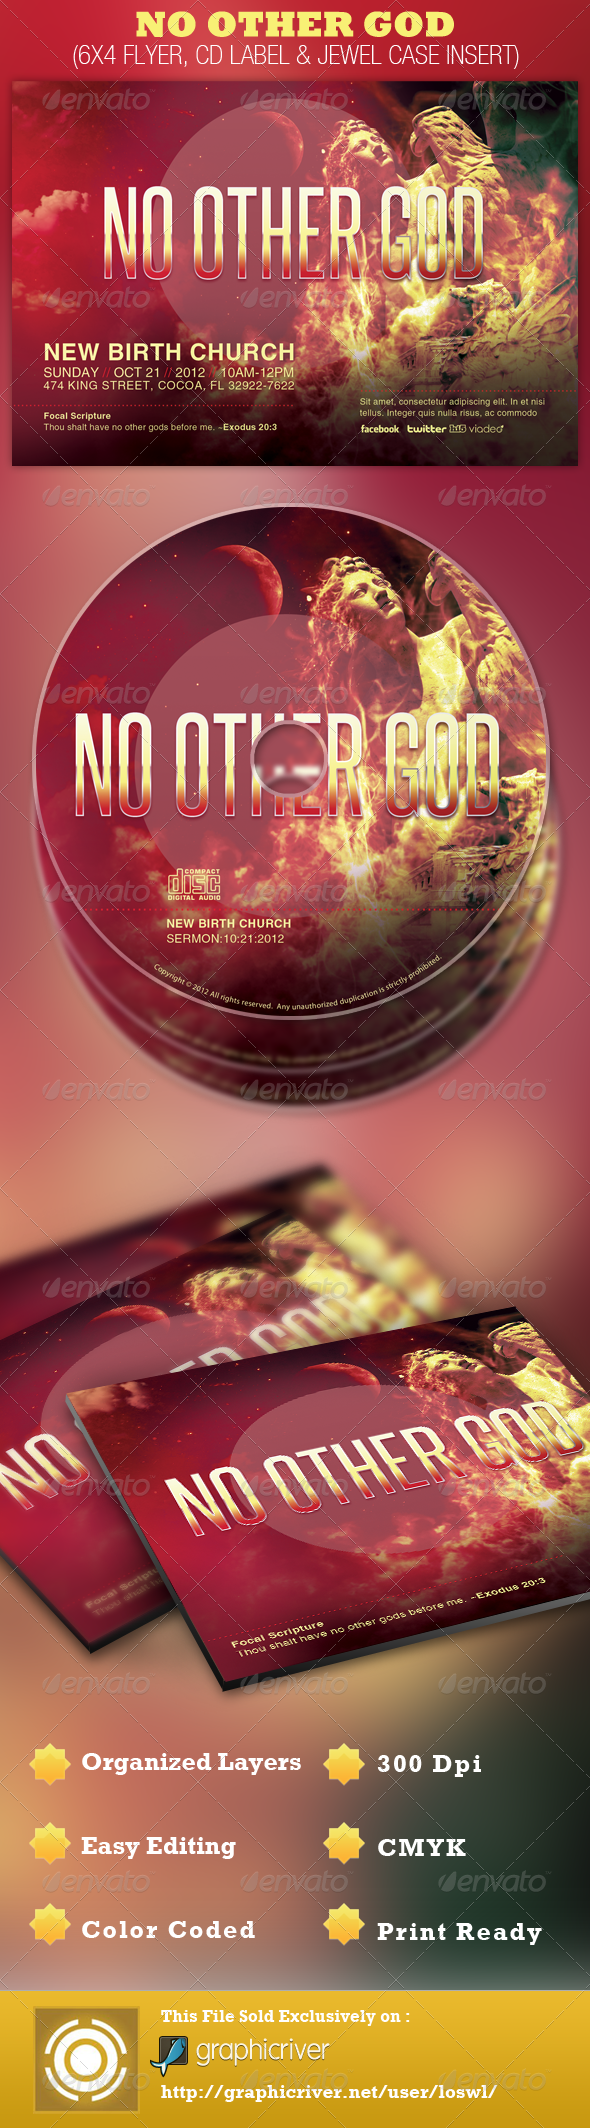 No Other God Church Flyer and CD Template - Church Flyers